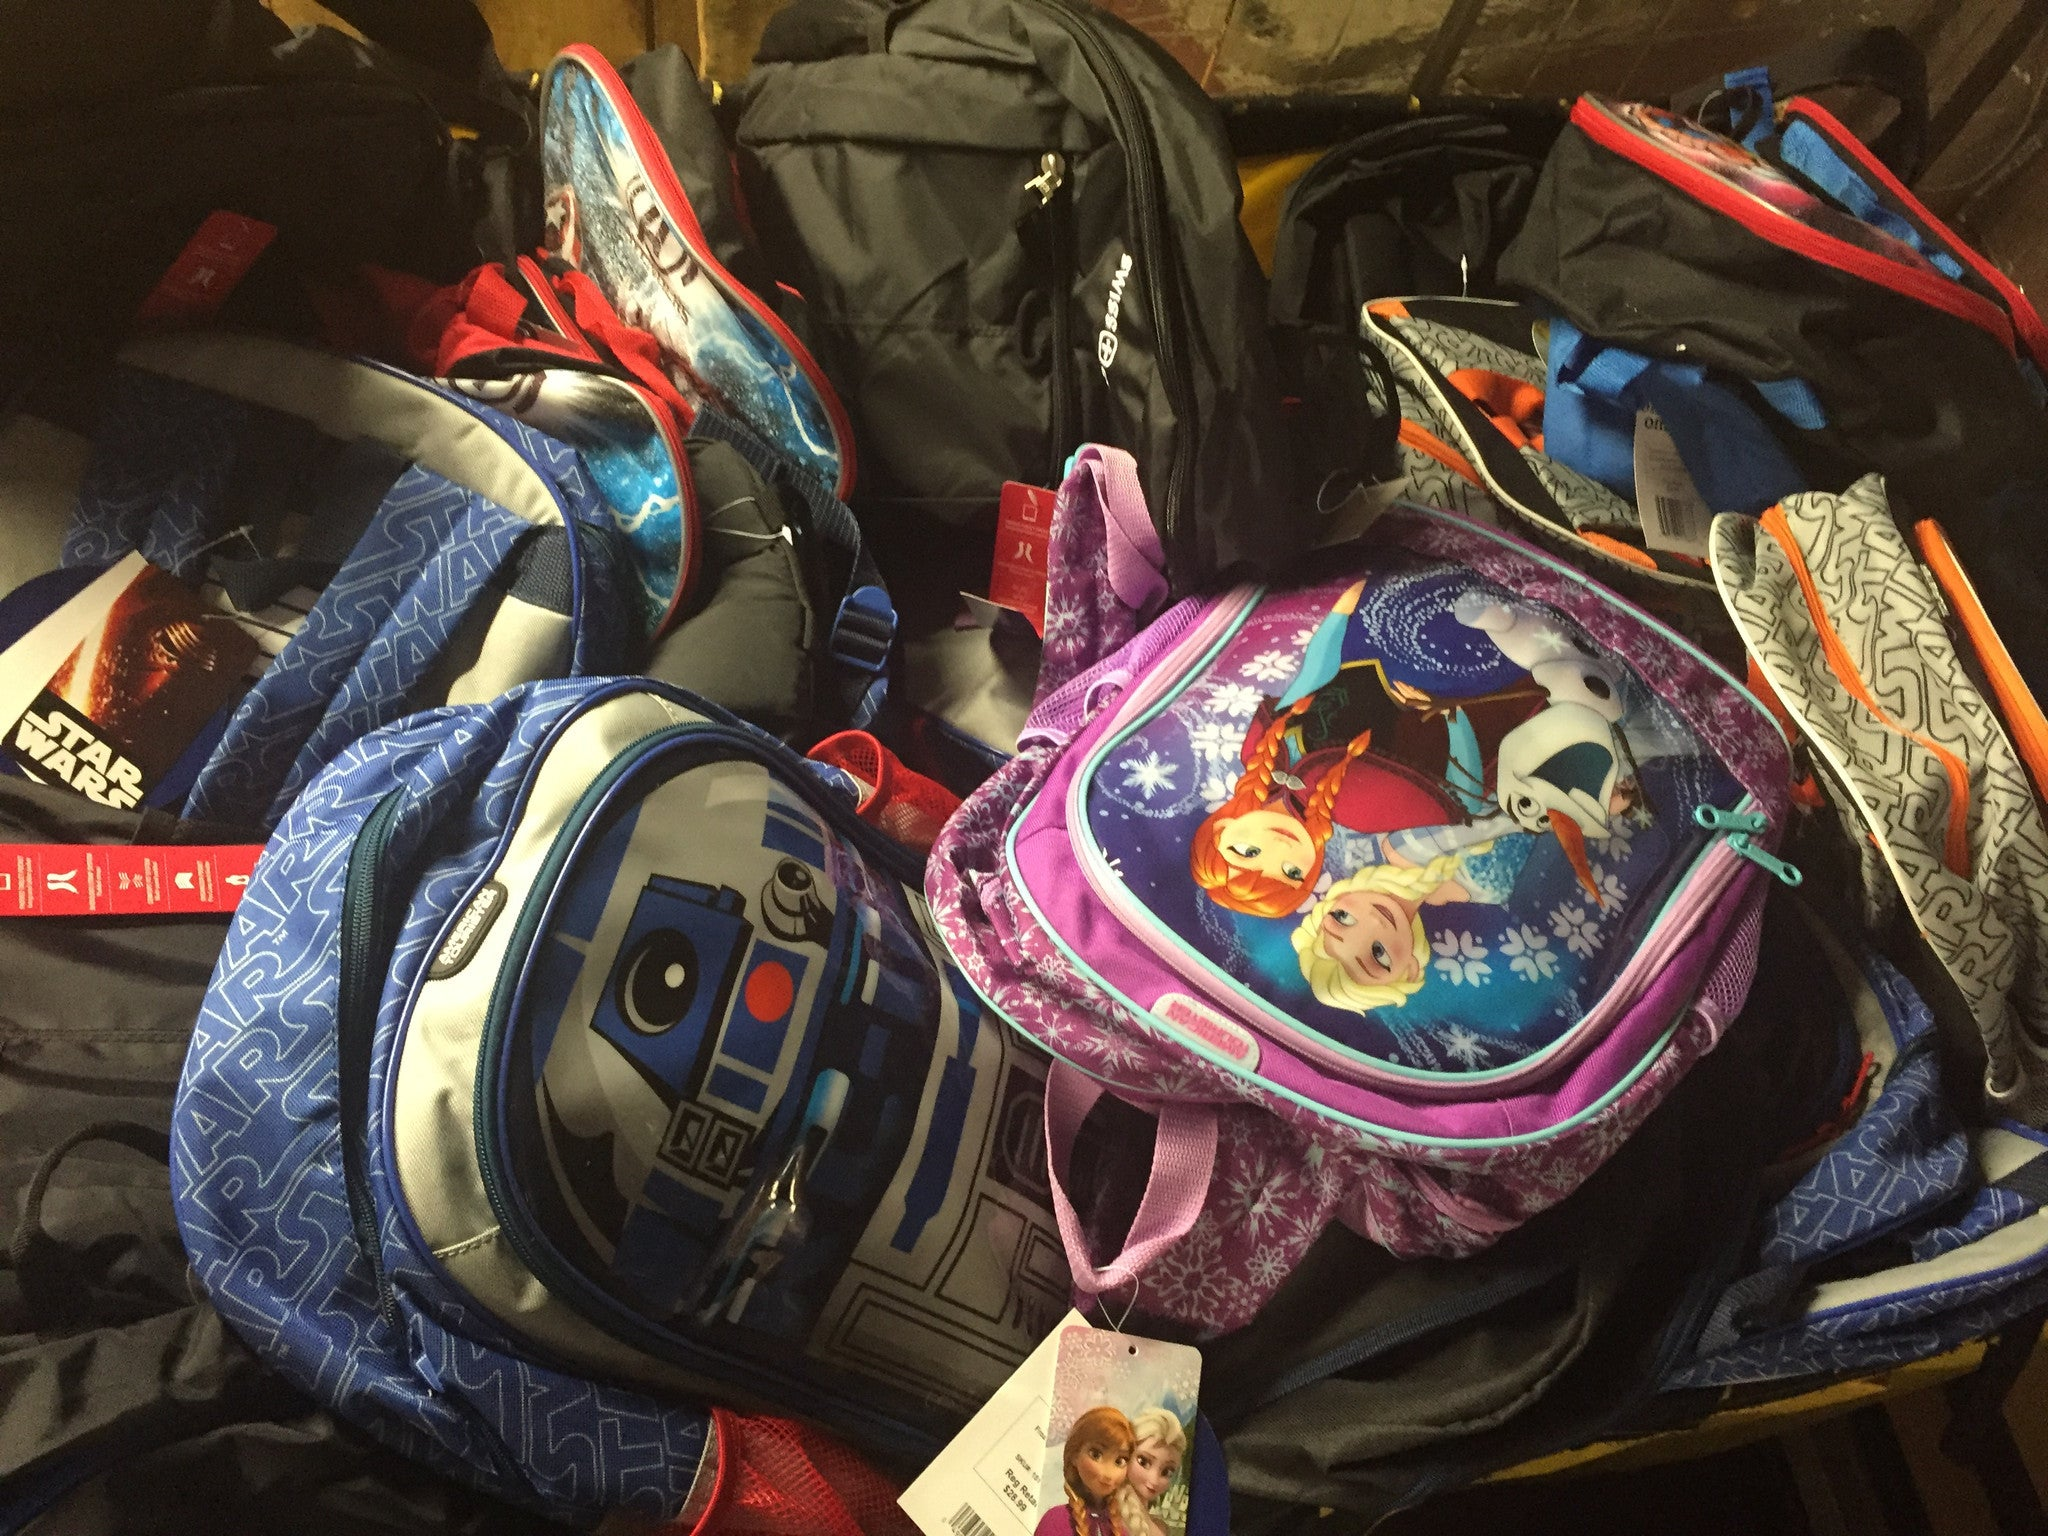 More than 300 backpacks delivered to students in need